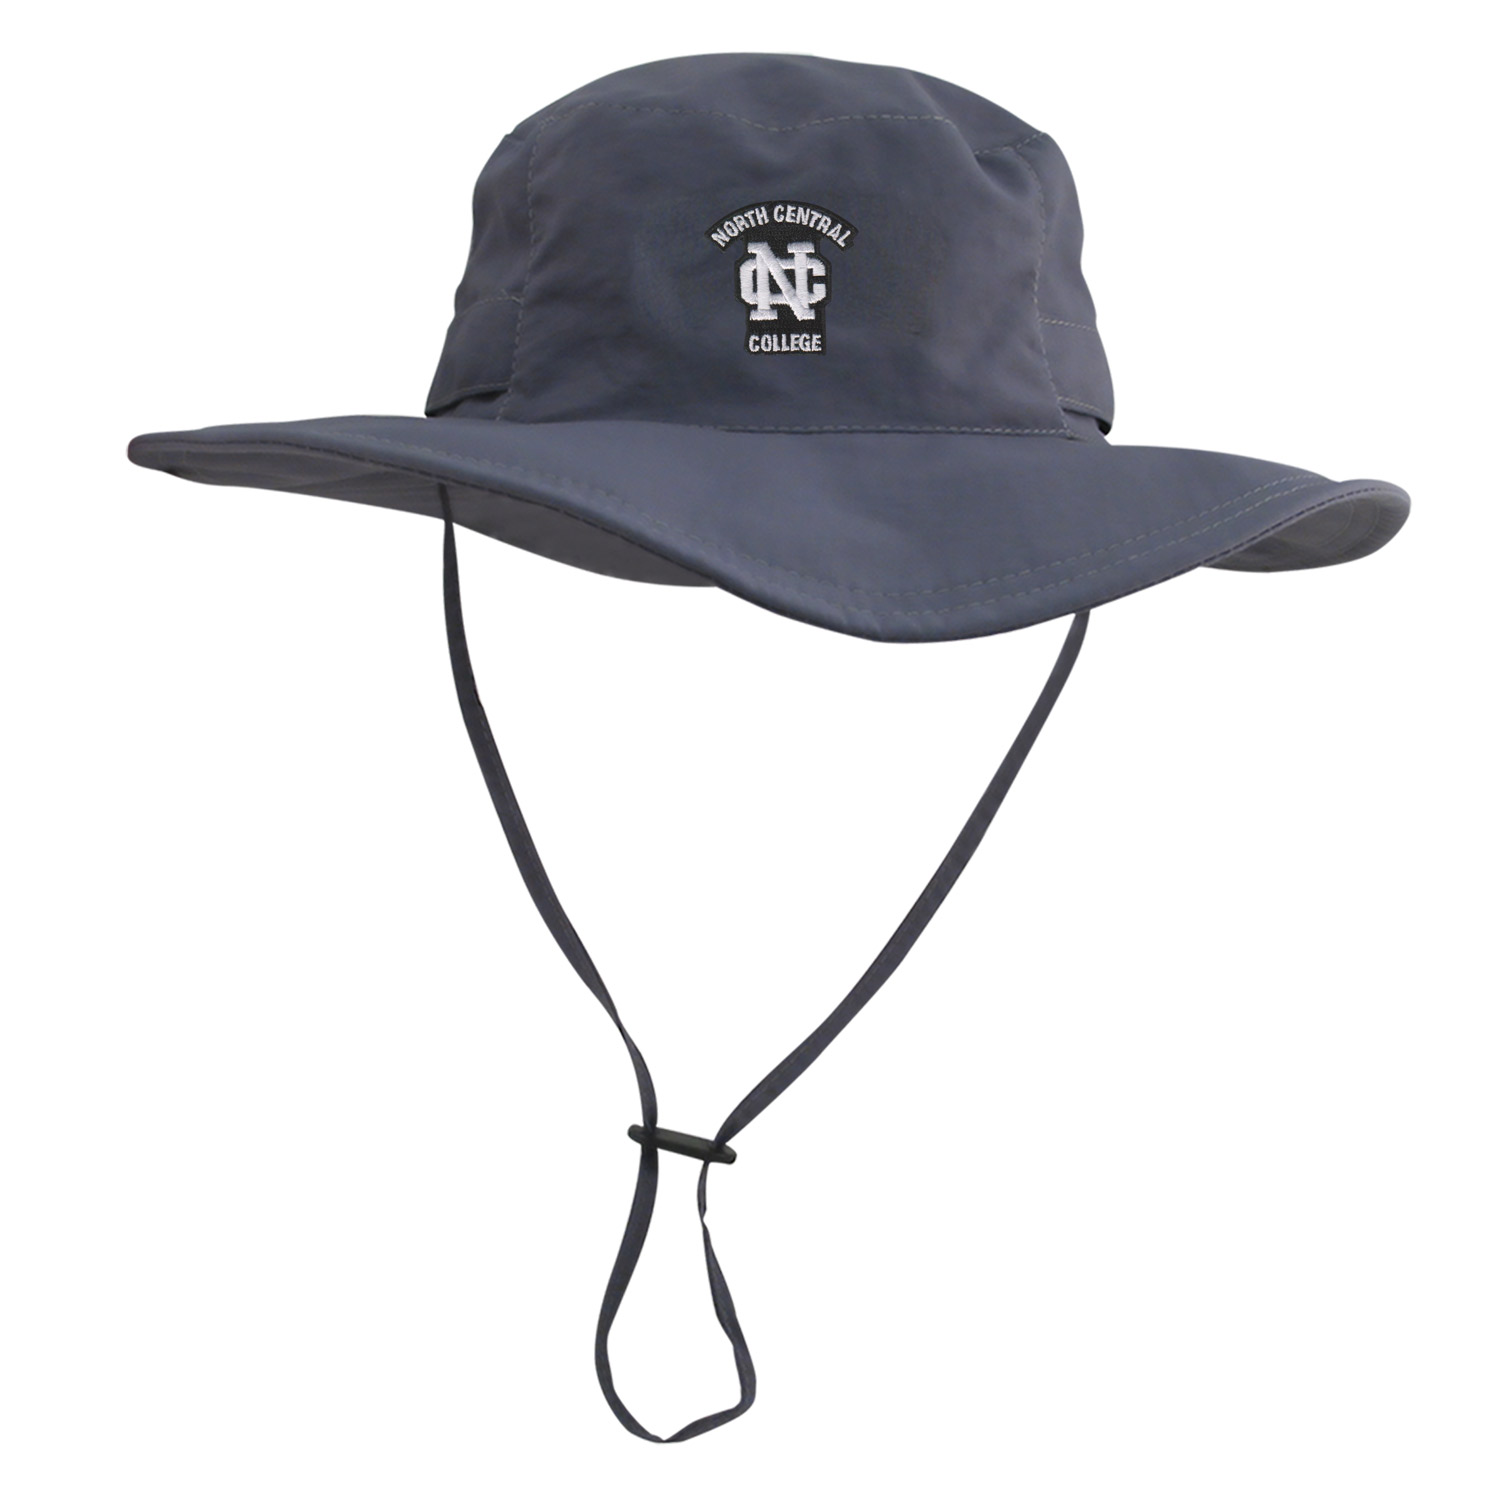 Image for the Bucket / Boonie Hat (Slate) product